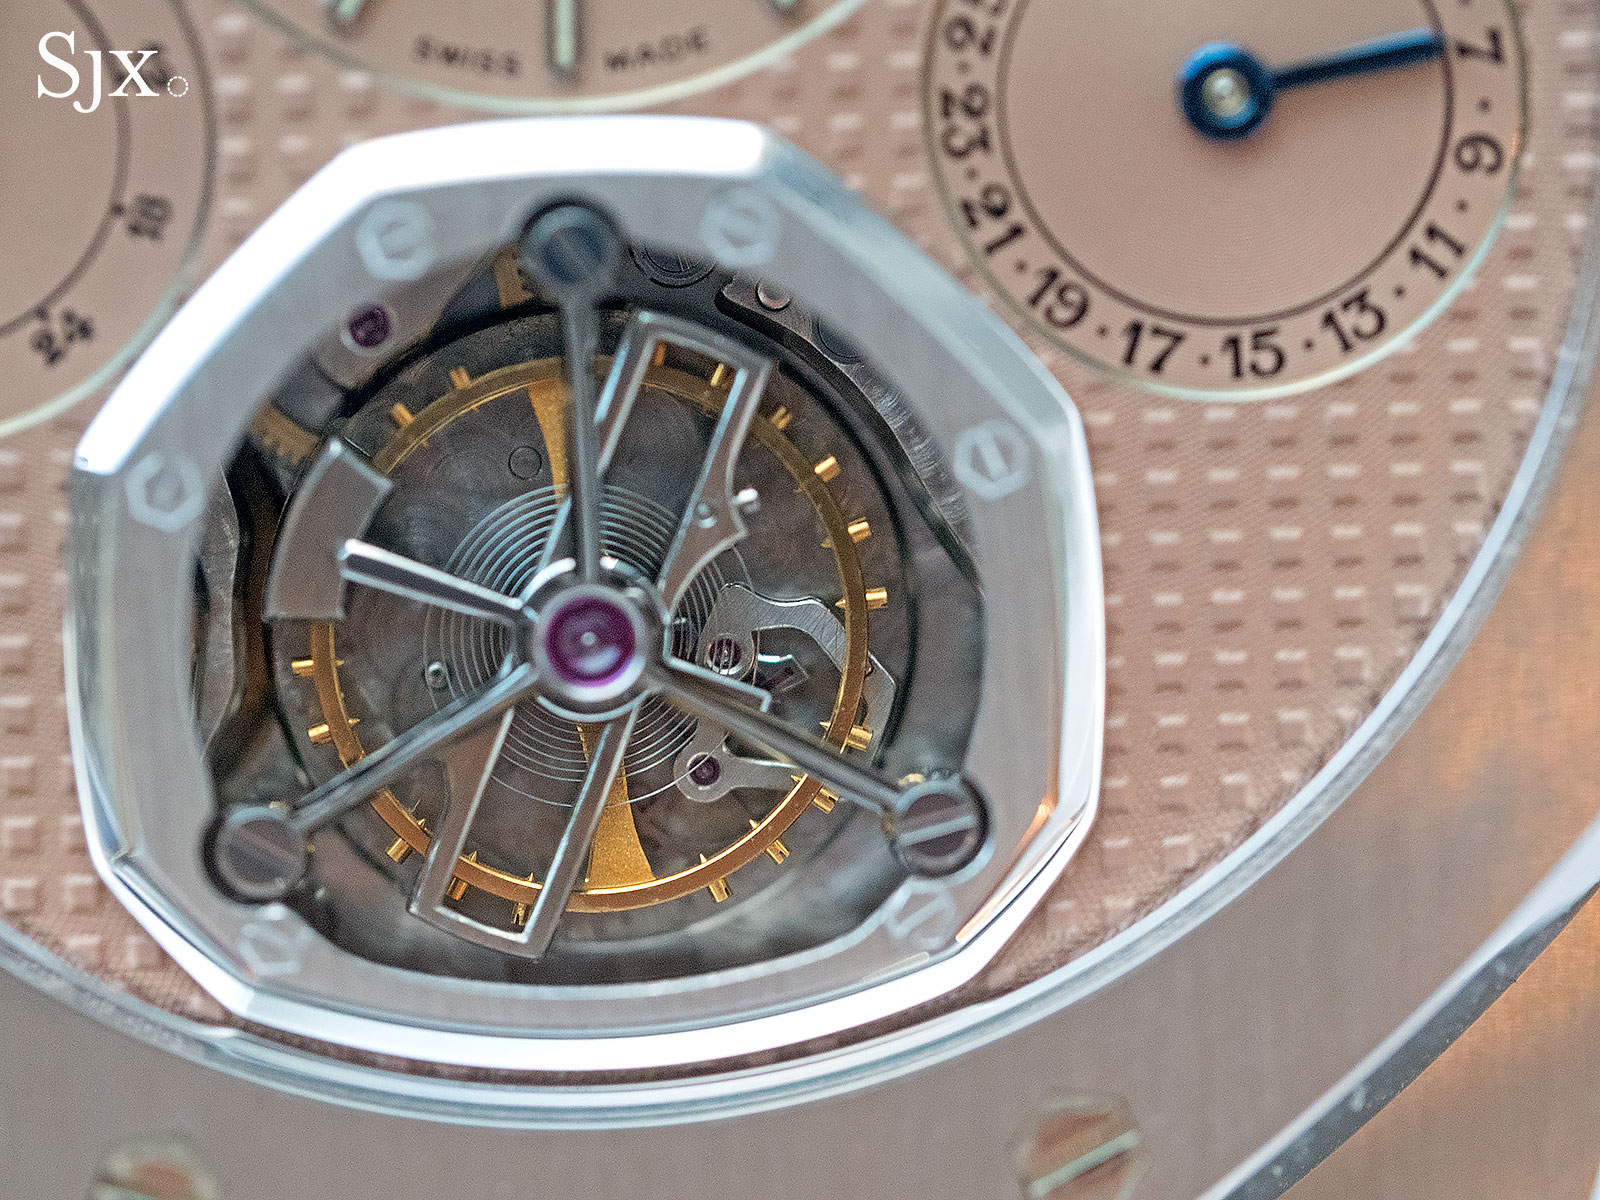 Audemars Piguet Royal Oak Tourbillon 25th ann. 2